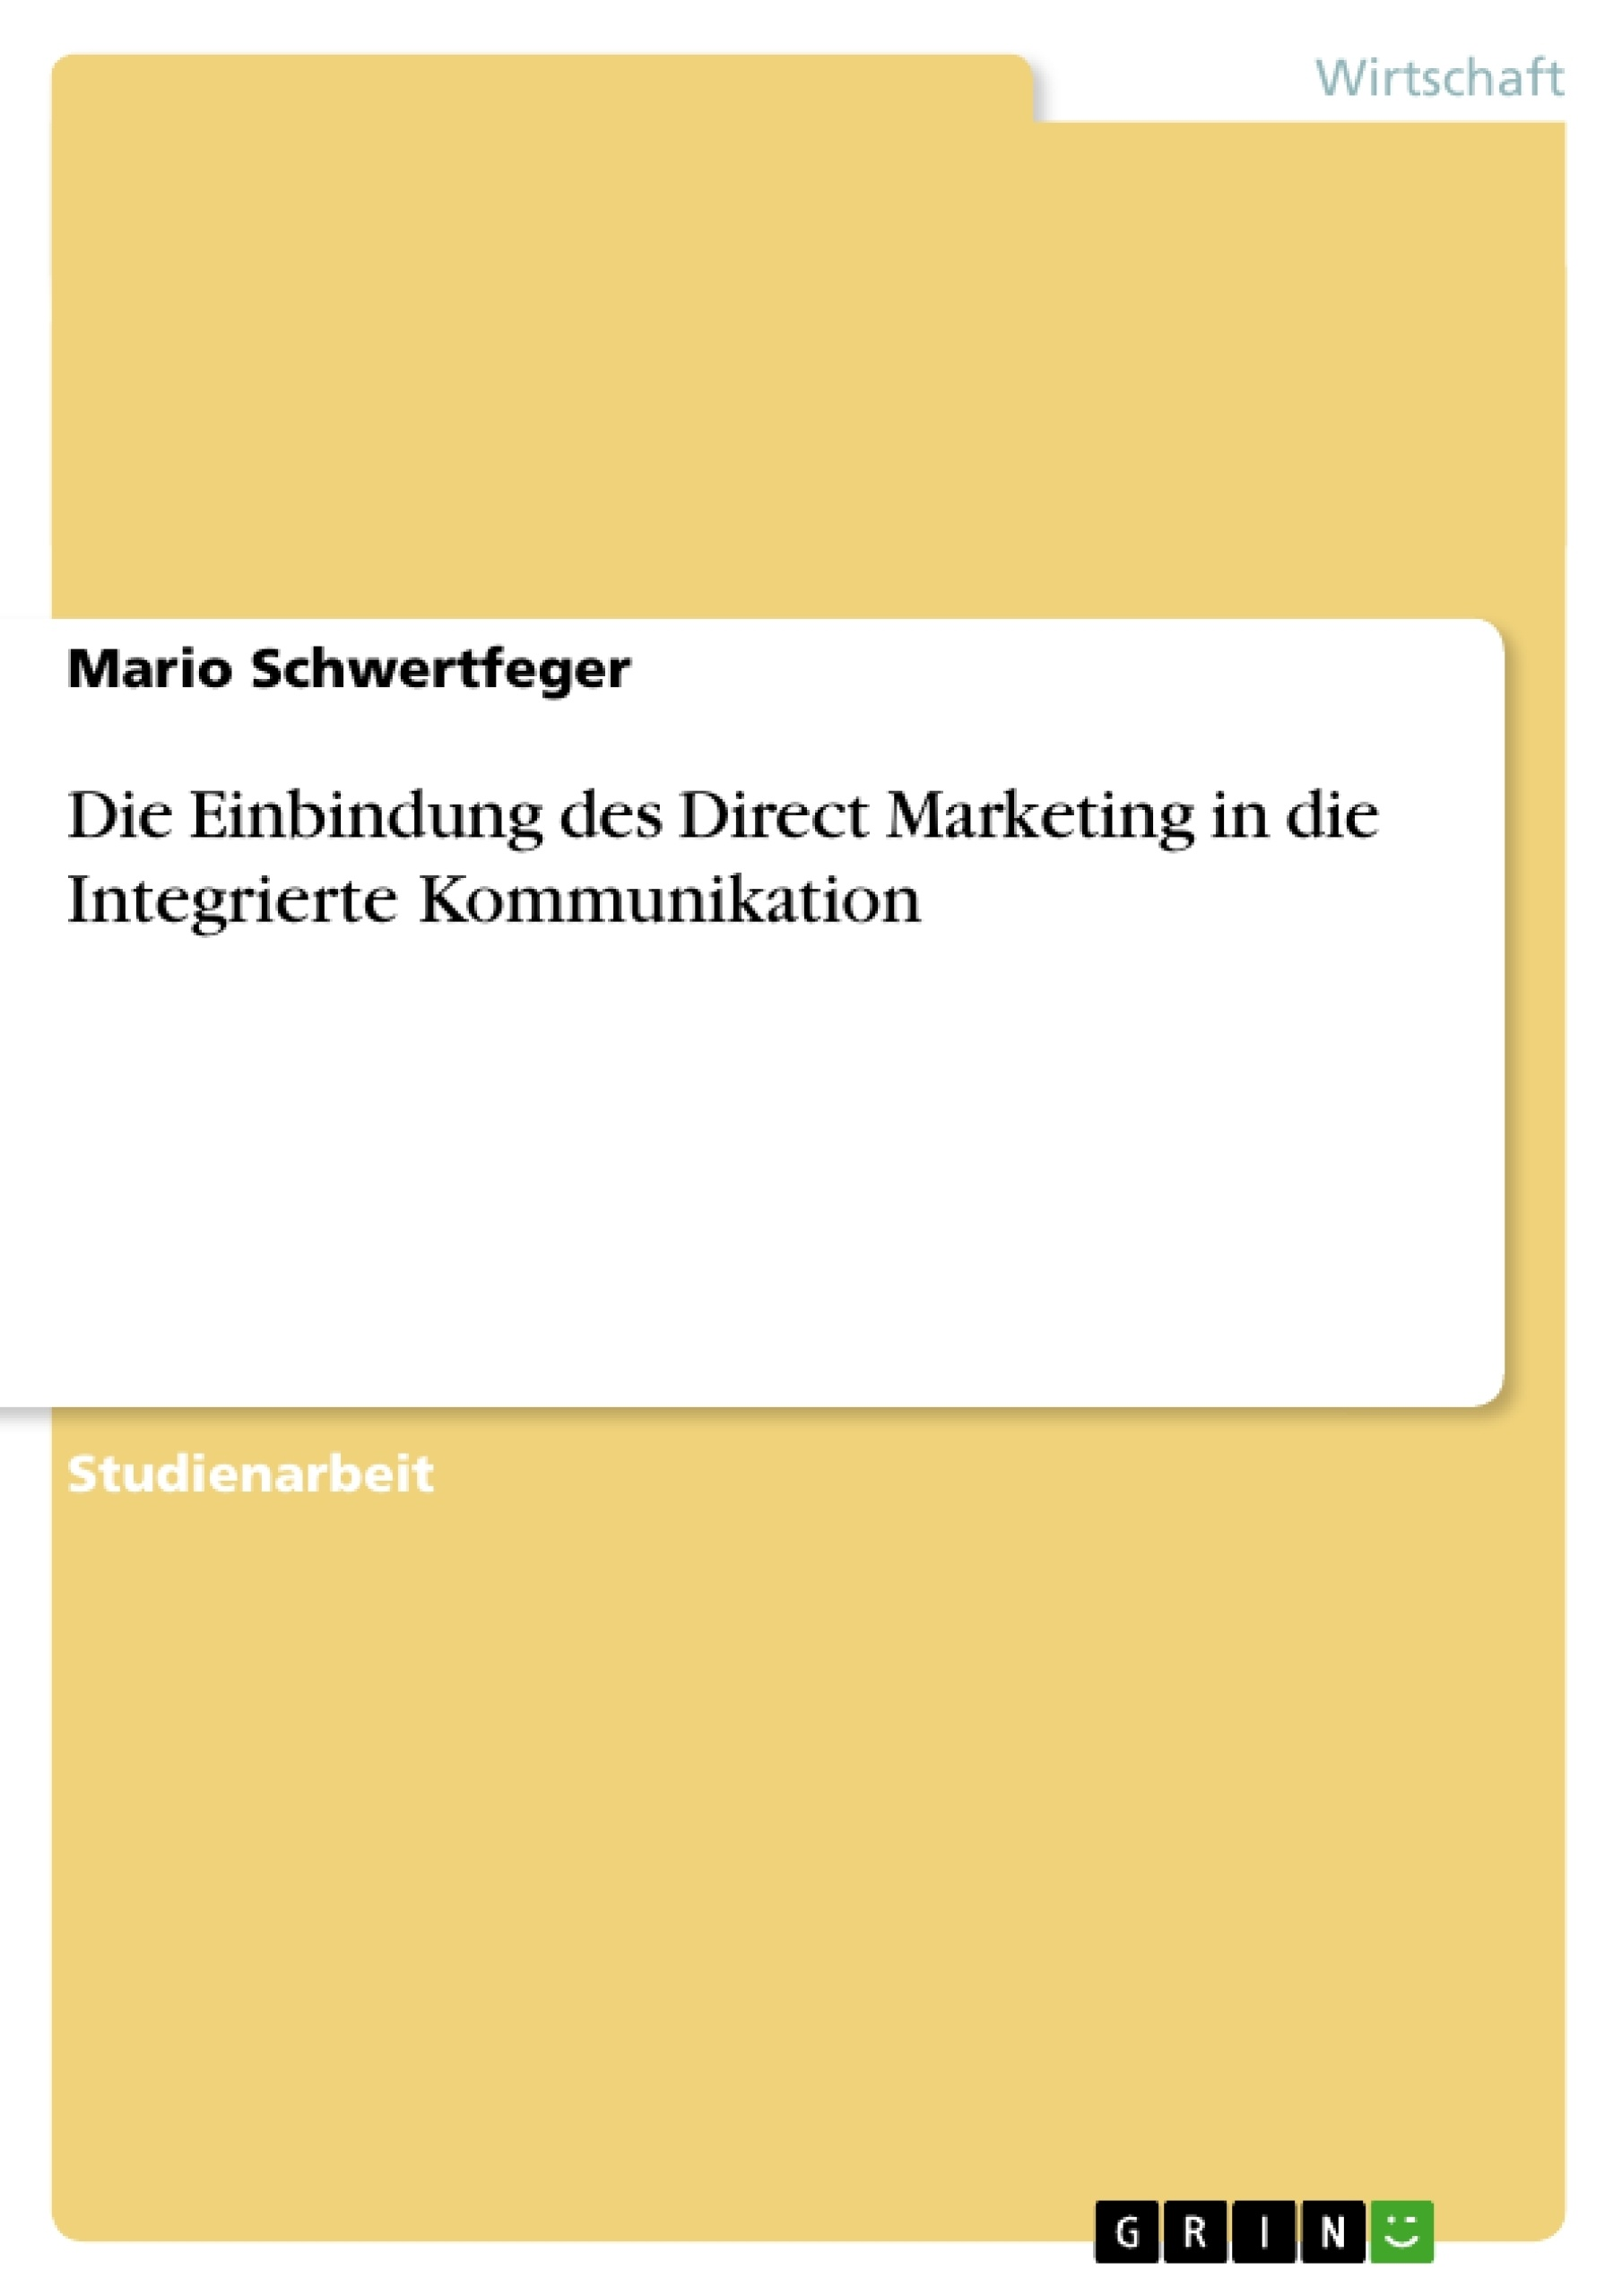 Titel: Die Einbindung des Direct Marketing in die Integrierte Kommunikation